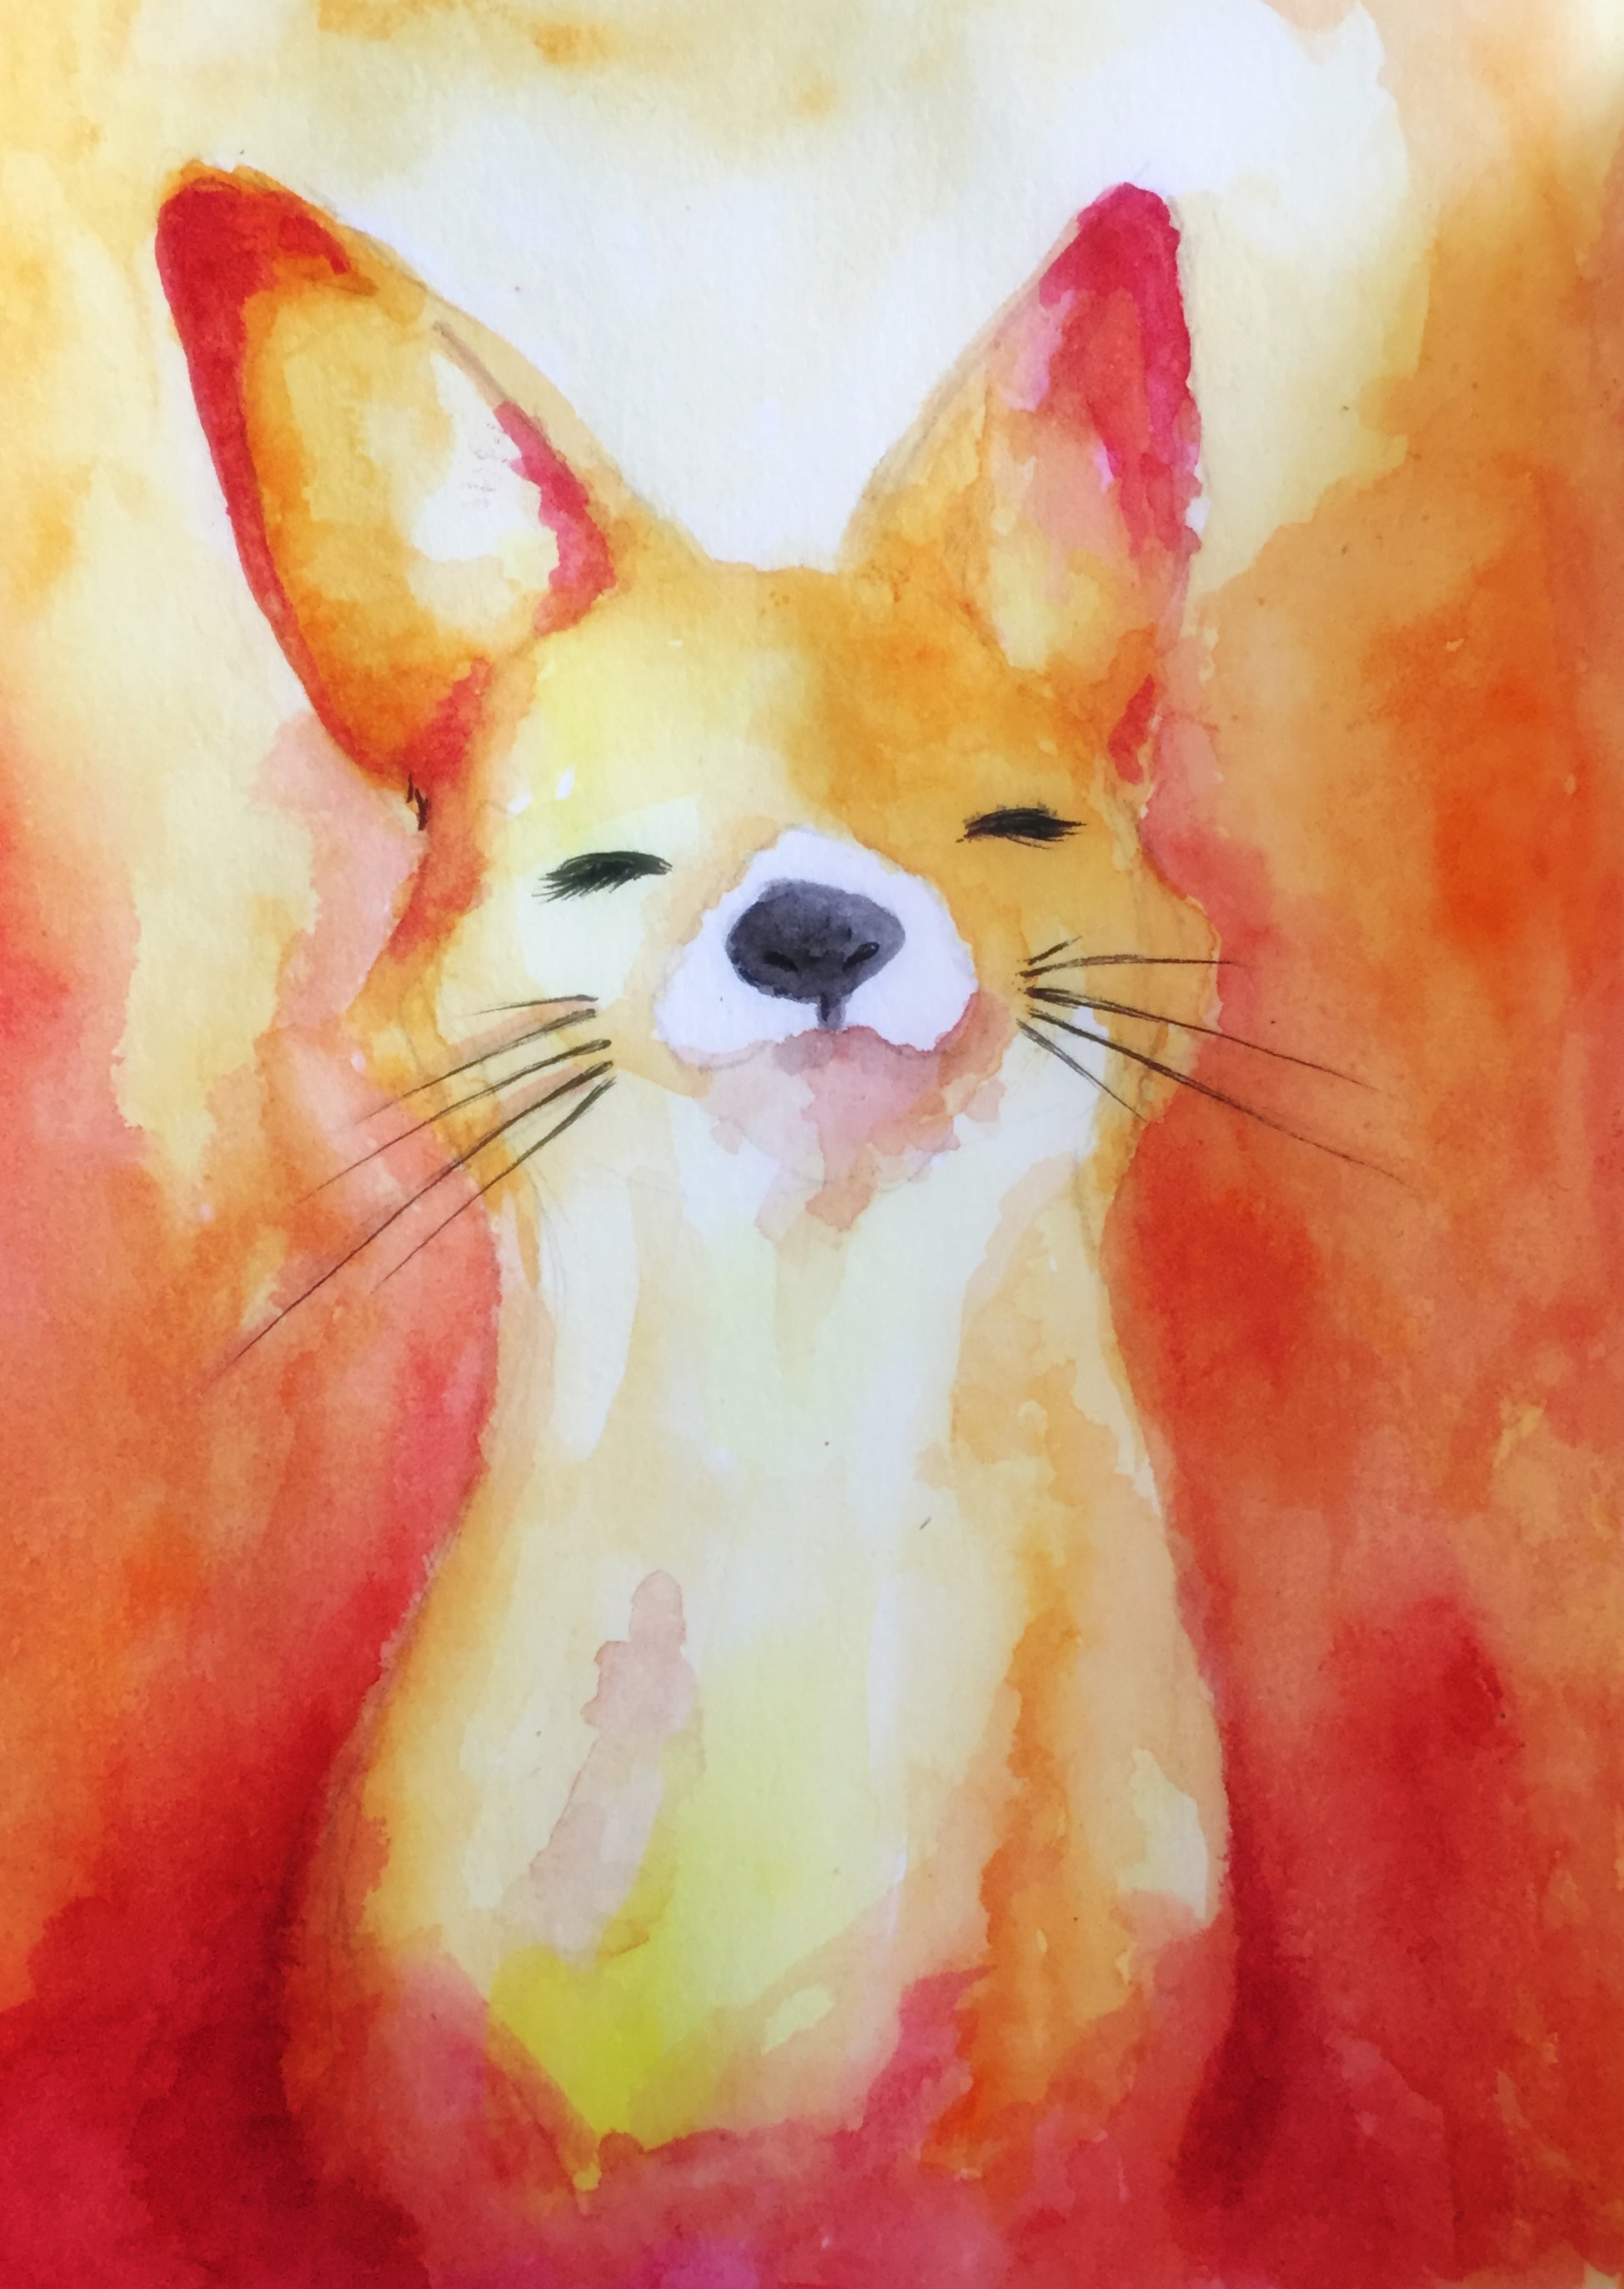 84247 download wallpaper Fox, Nice, Sweetheart, Paints, Watercolor, Art screensavers and pictures for free